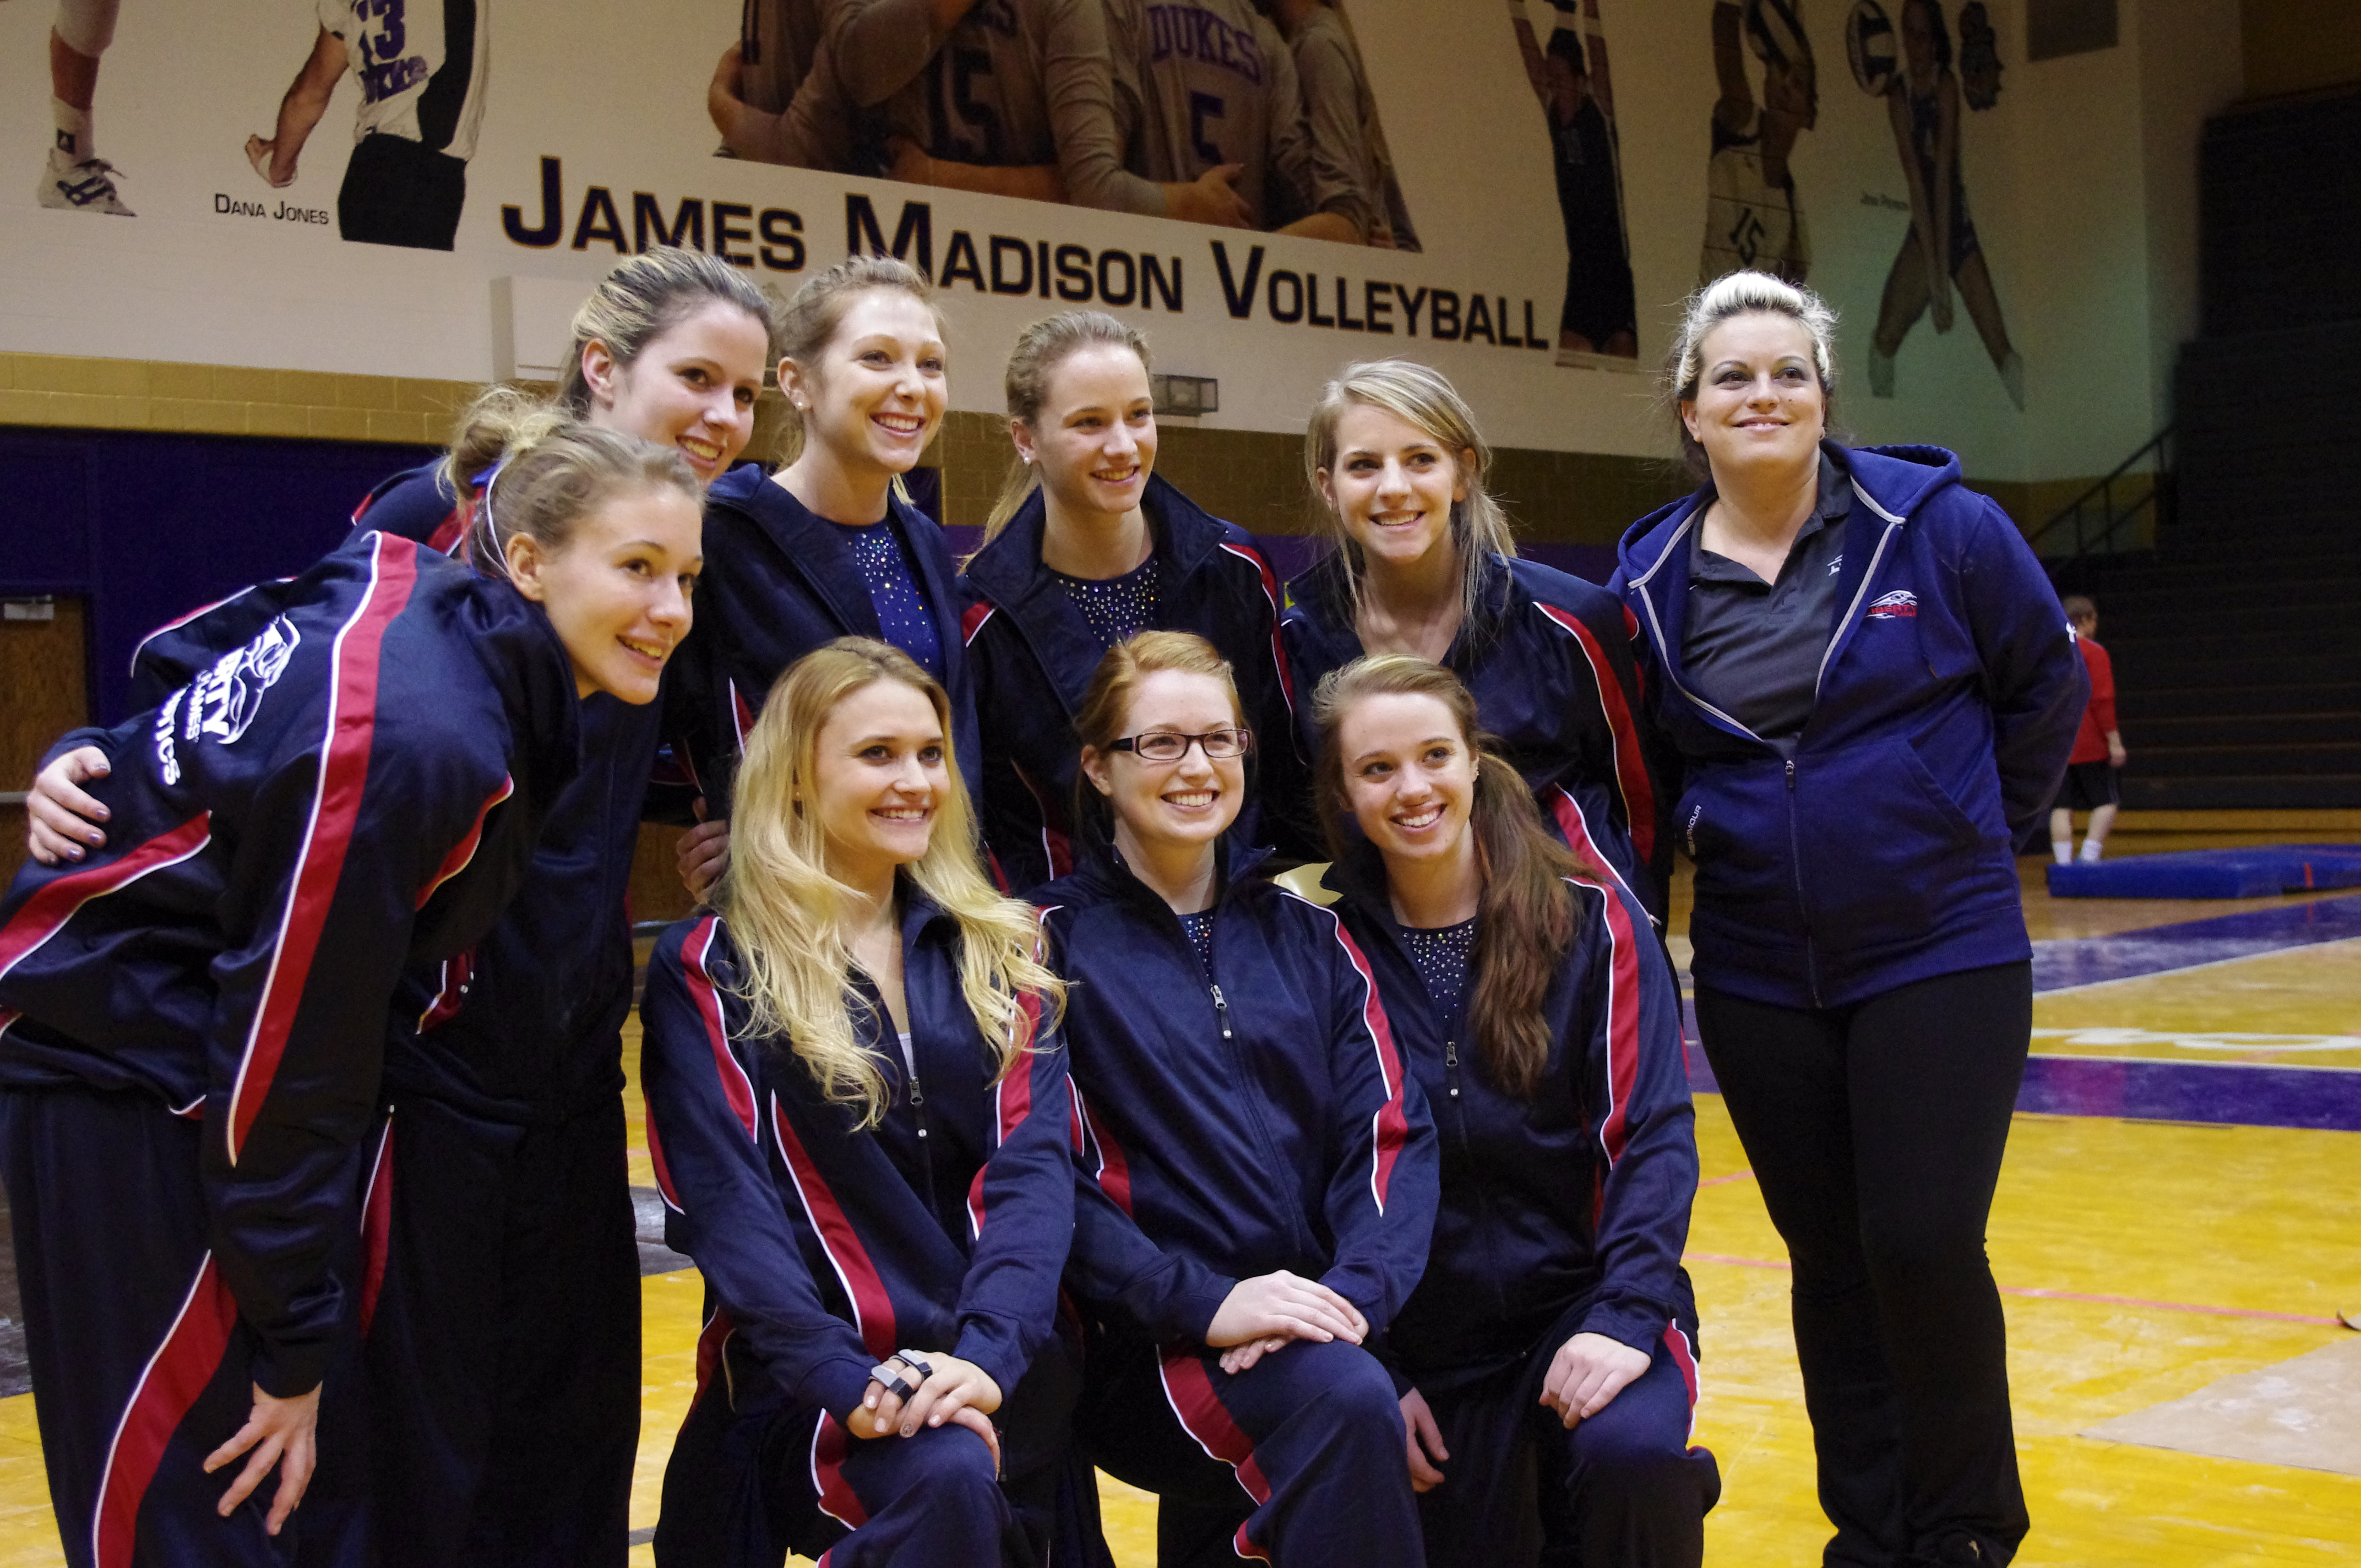 Gymnastics team earns solid results at nationals